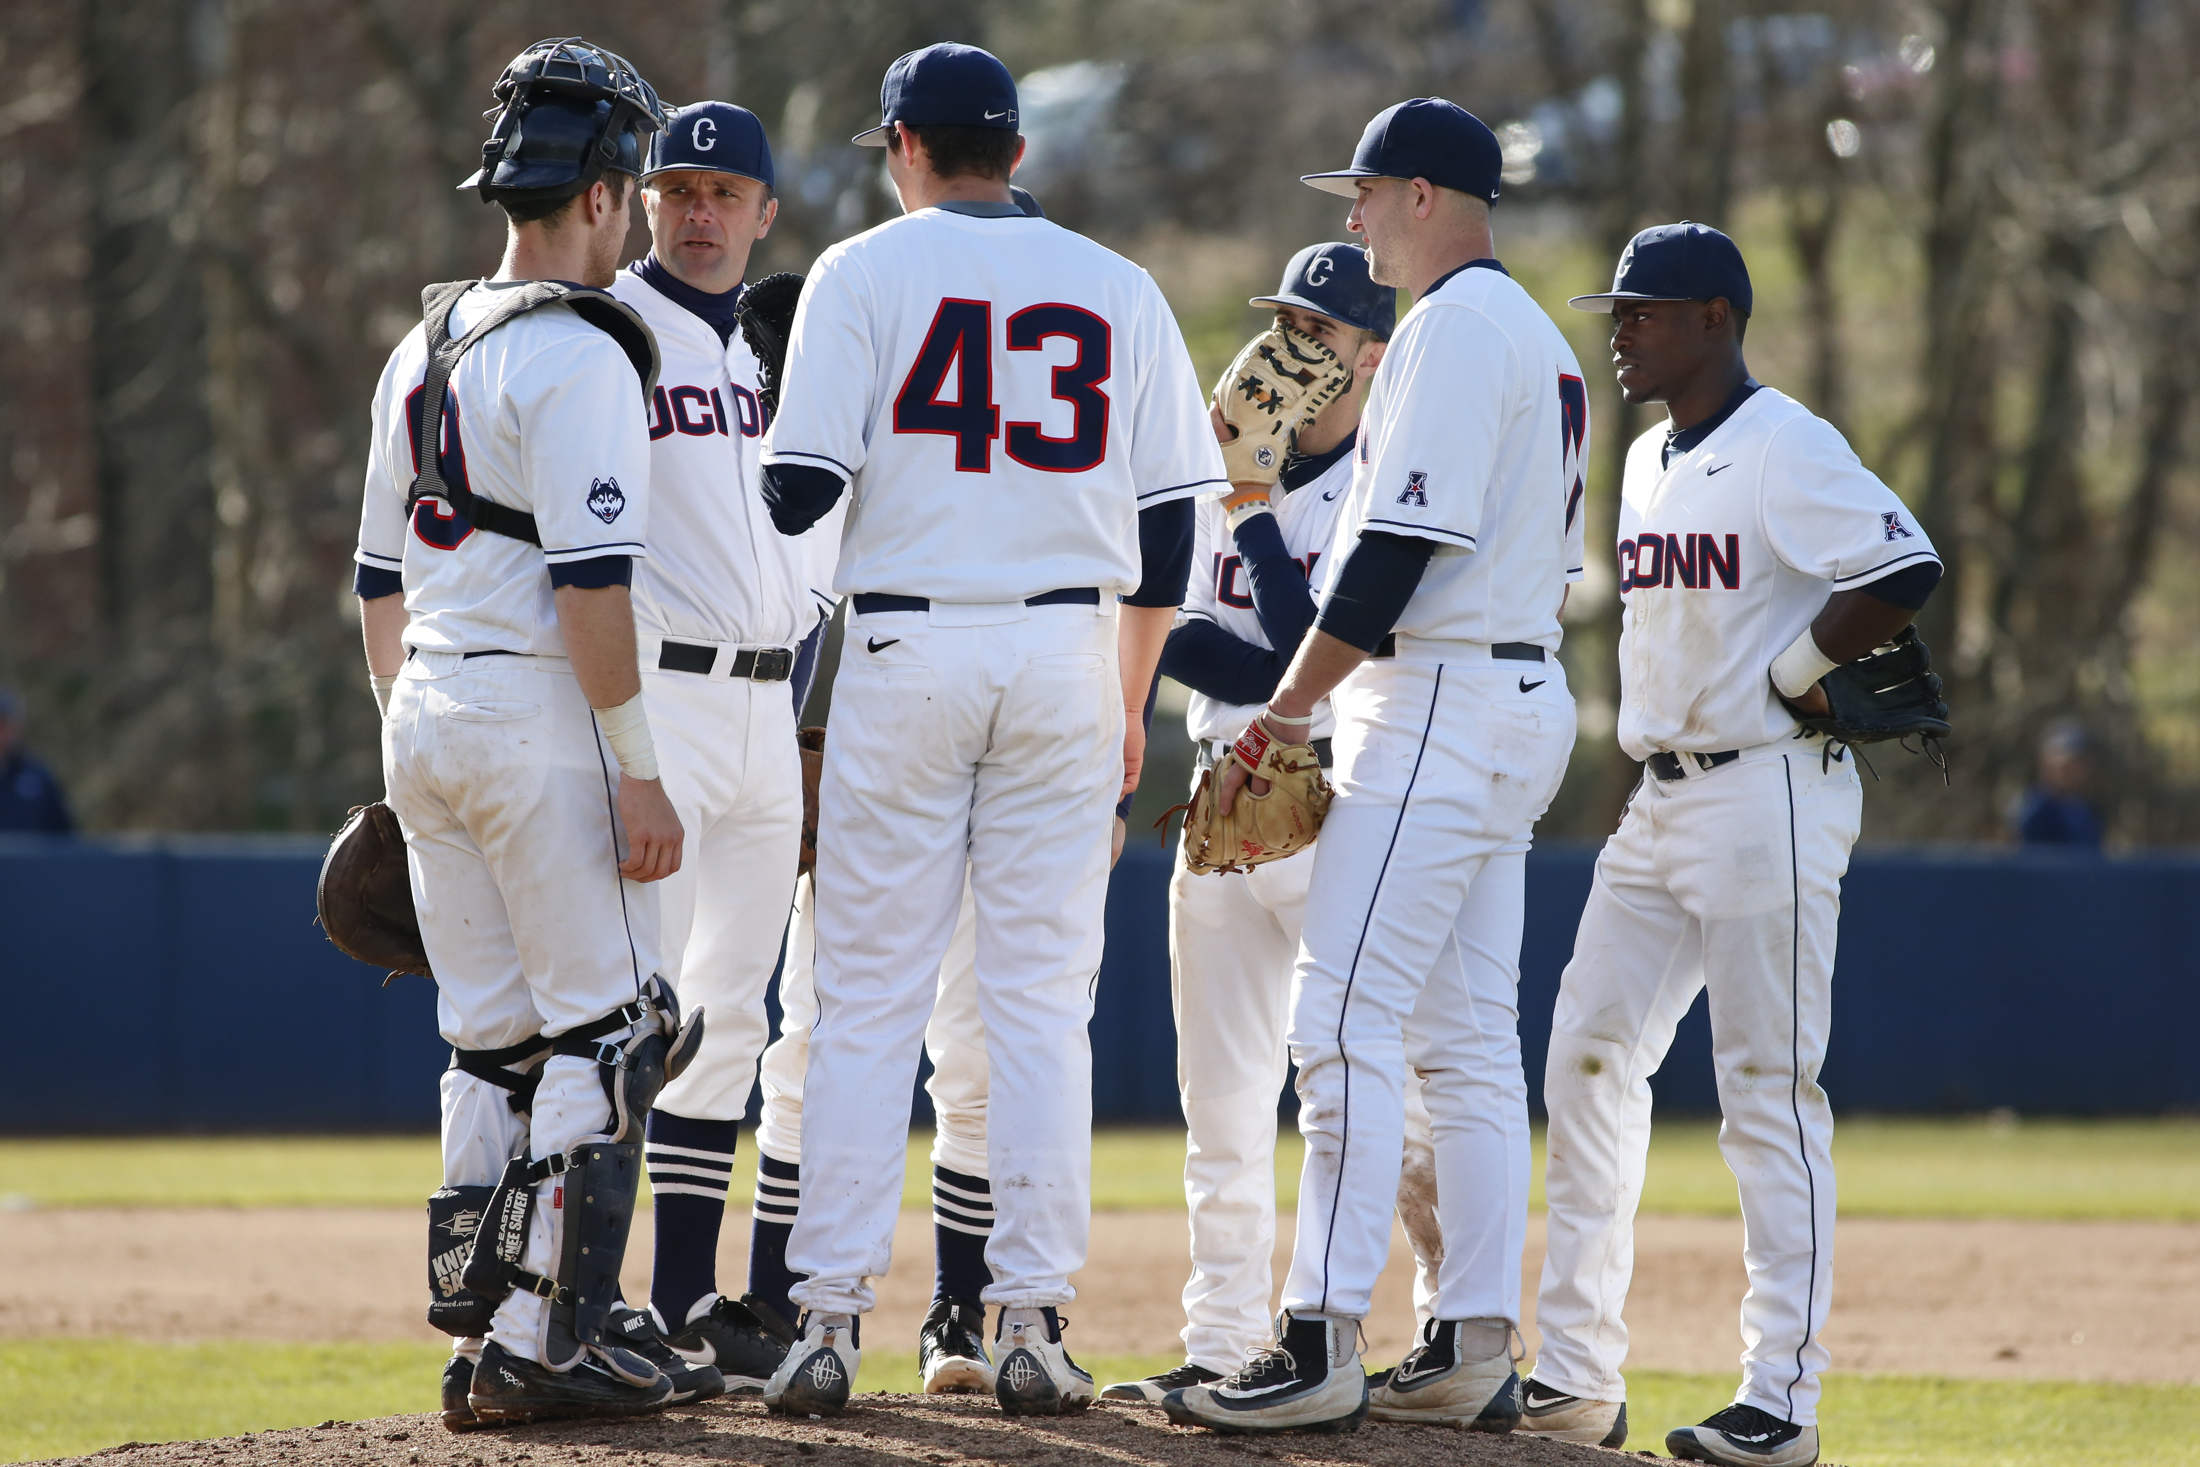 The Huskies defeat the Fairfield College Stags 2-1 April 12, 2016 at J.O. Christian Field. (Tyler Benton/The Daily Campus)